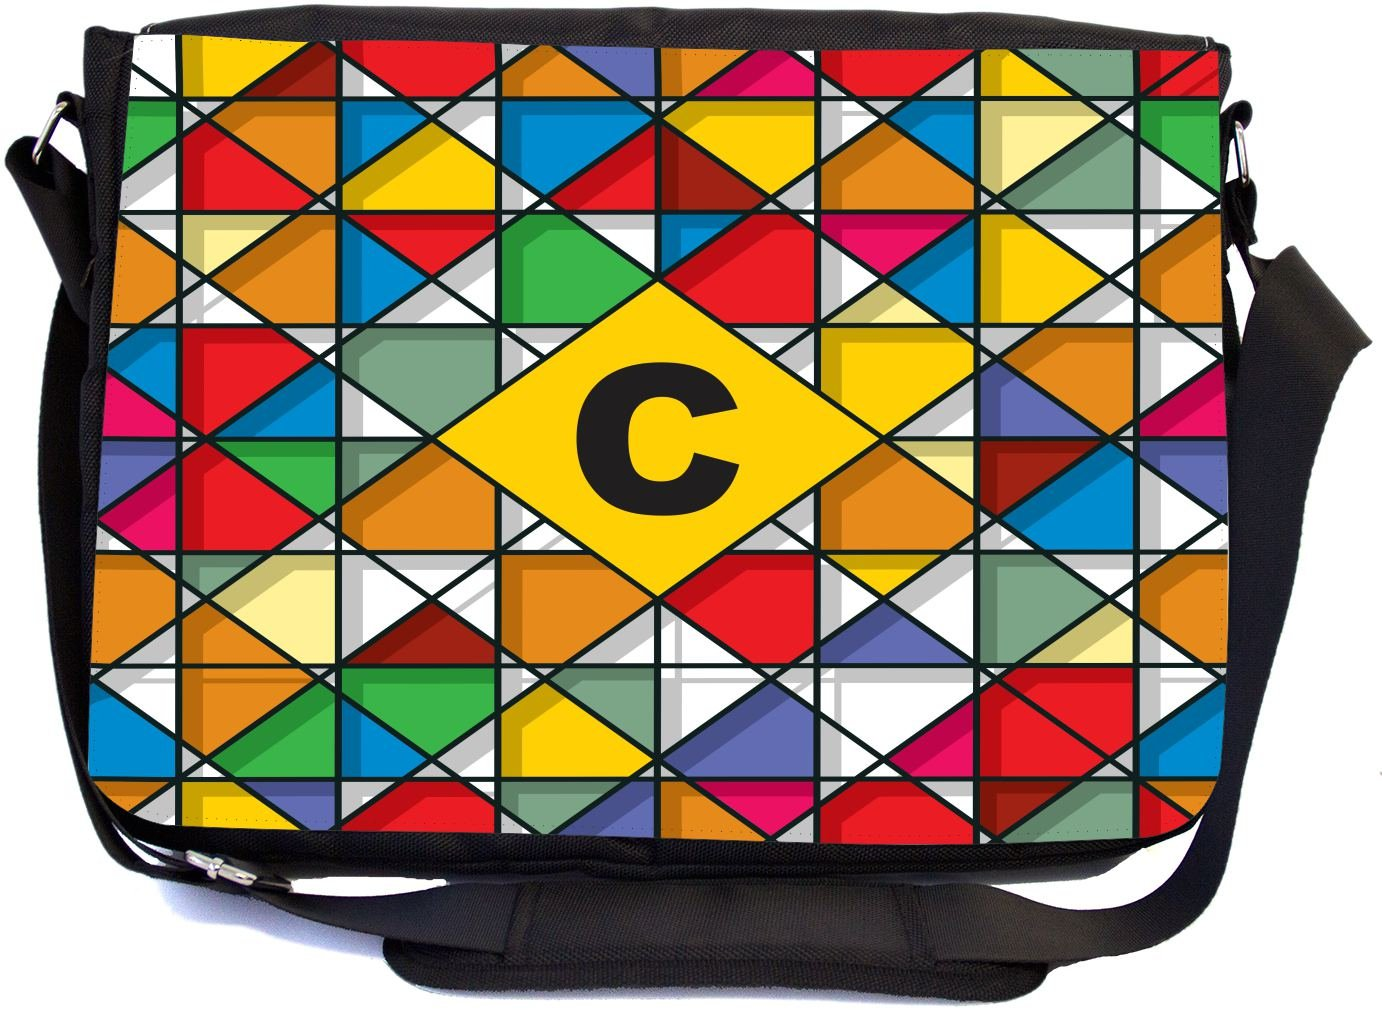 Rikki Knight Letter C Monogram Vibrant Colors Stained Glass Design Design Combo Multifunction Messenger Laptop Bag - with Padded Insert for School or Work - Includes Wristlet & Mirror